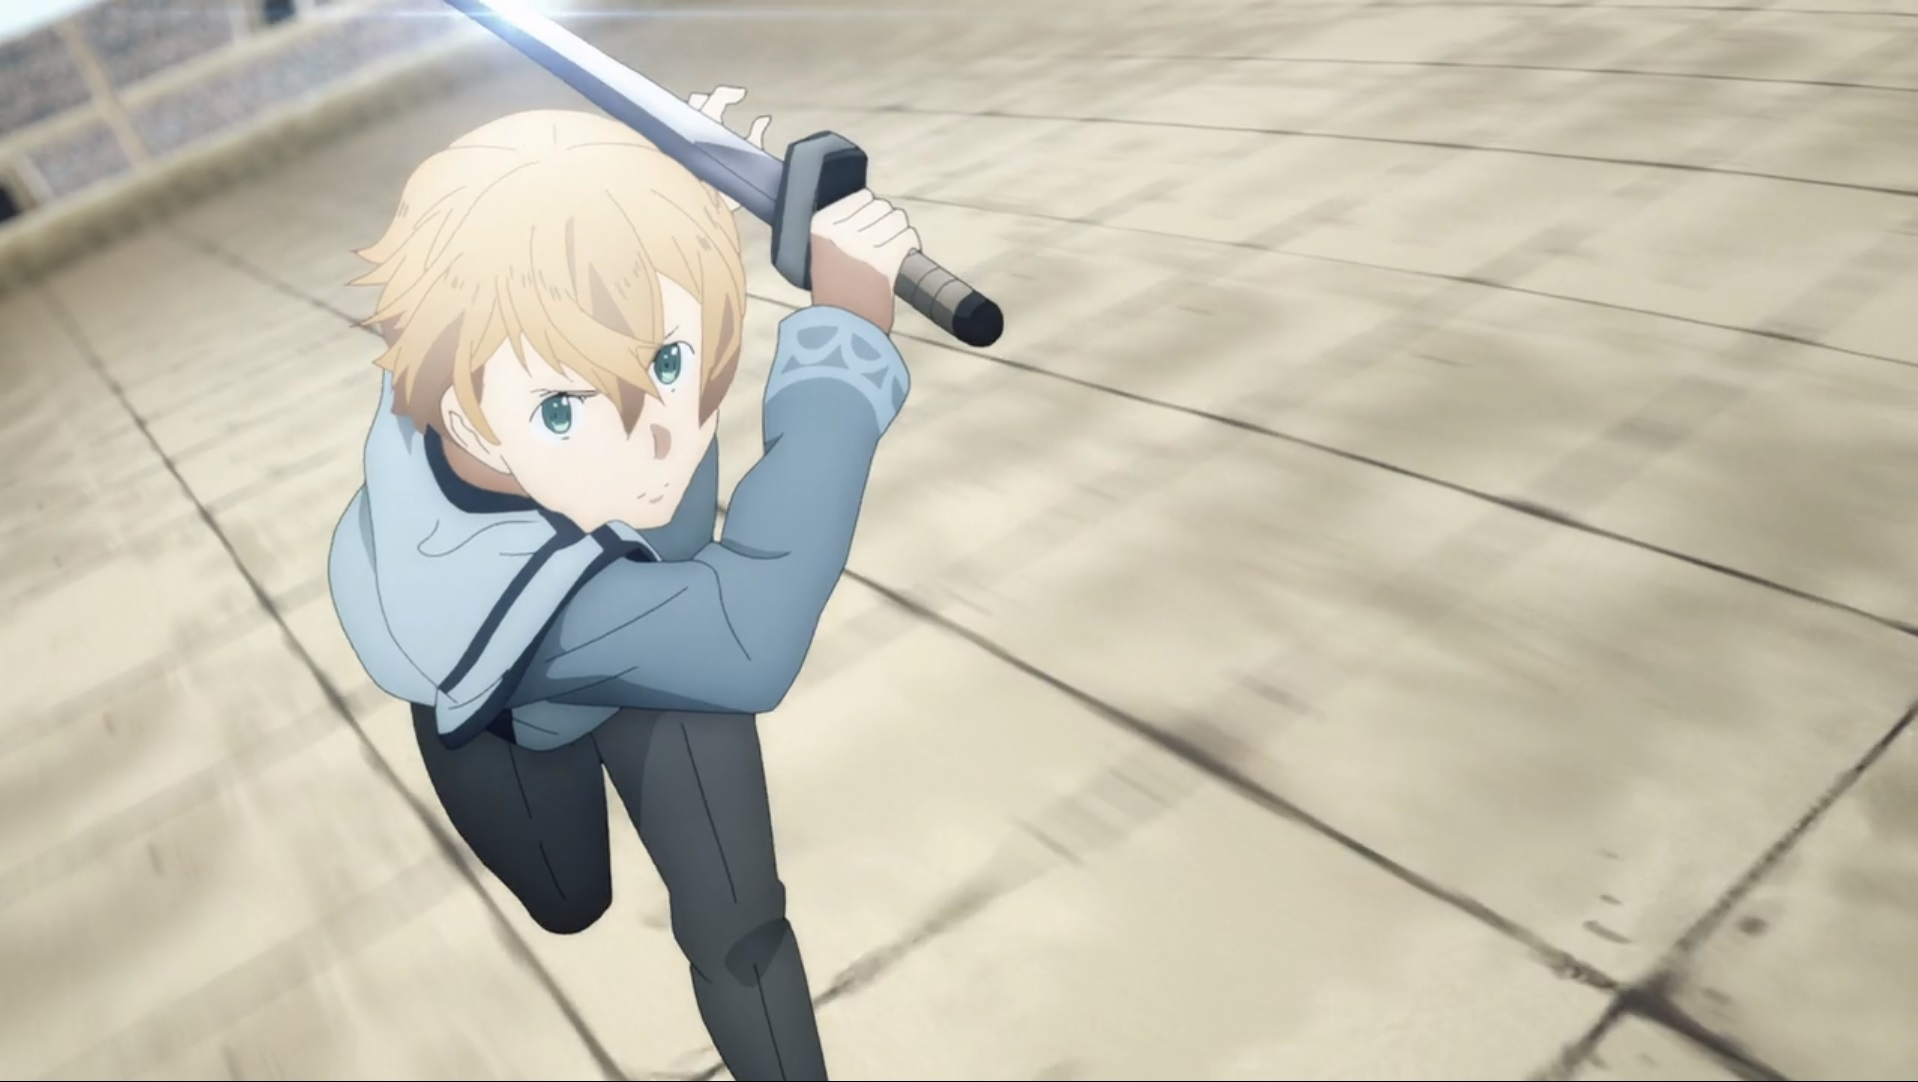 What Happened in the Chunk of Story Sword Art Online: Alicization